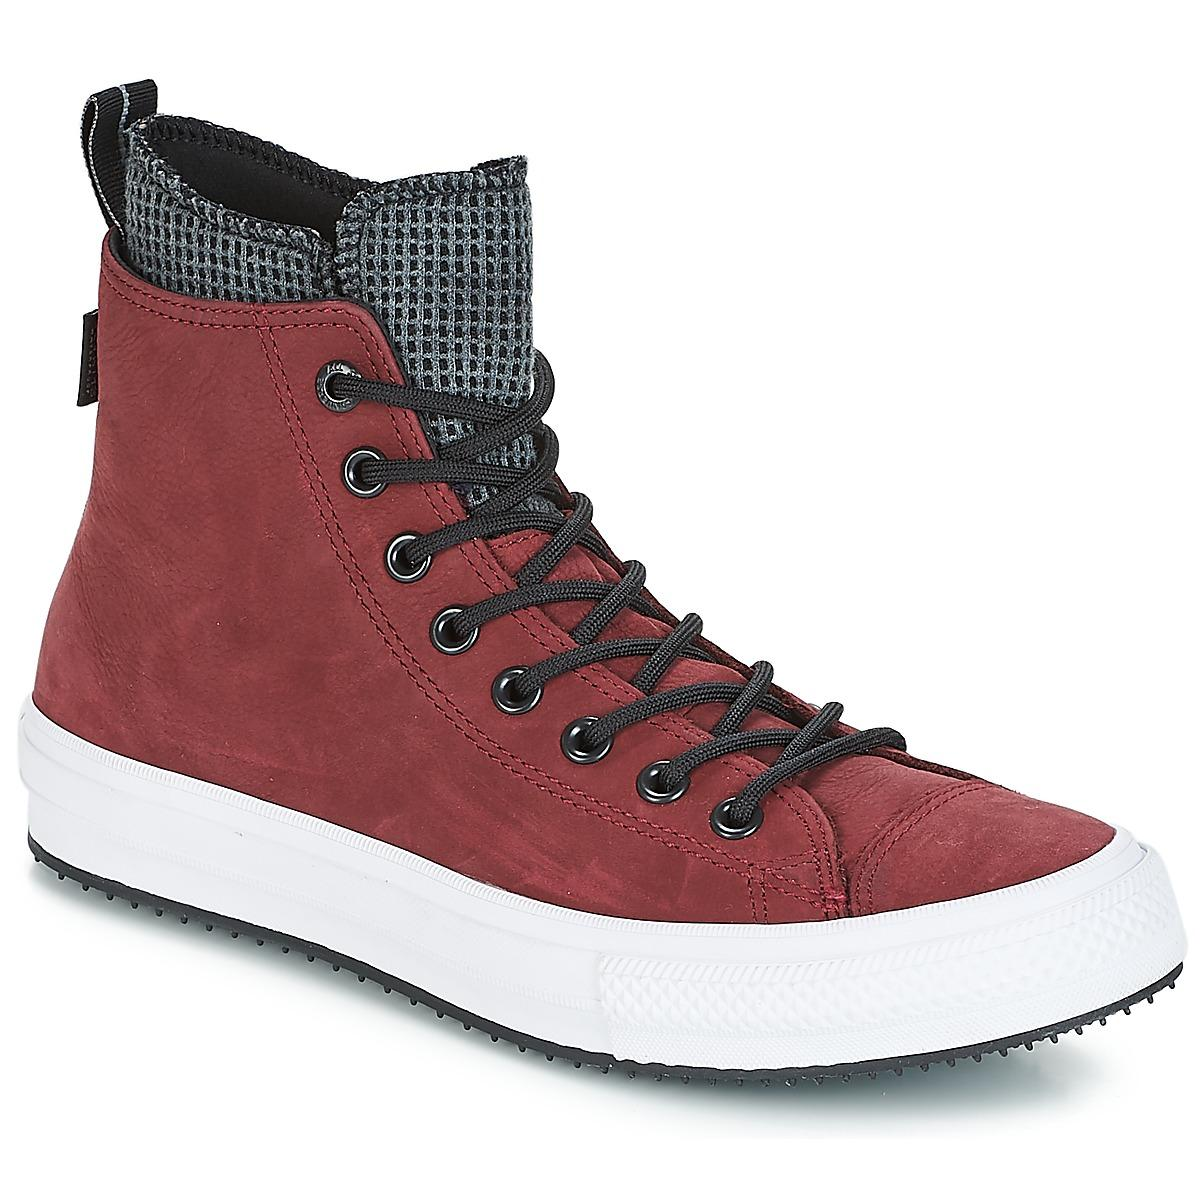 4e2f0b5430af Converse Chuck Taylor All Star Wp Boot Leather Hi Shoes (high-top ...